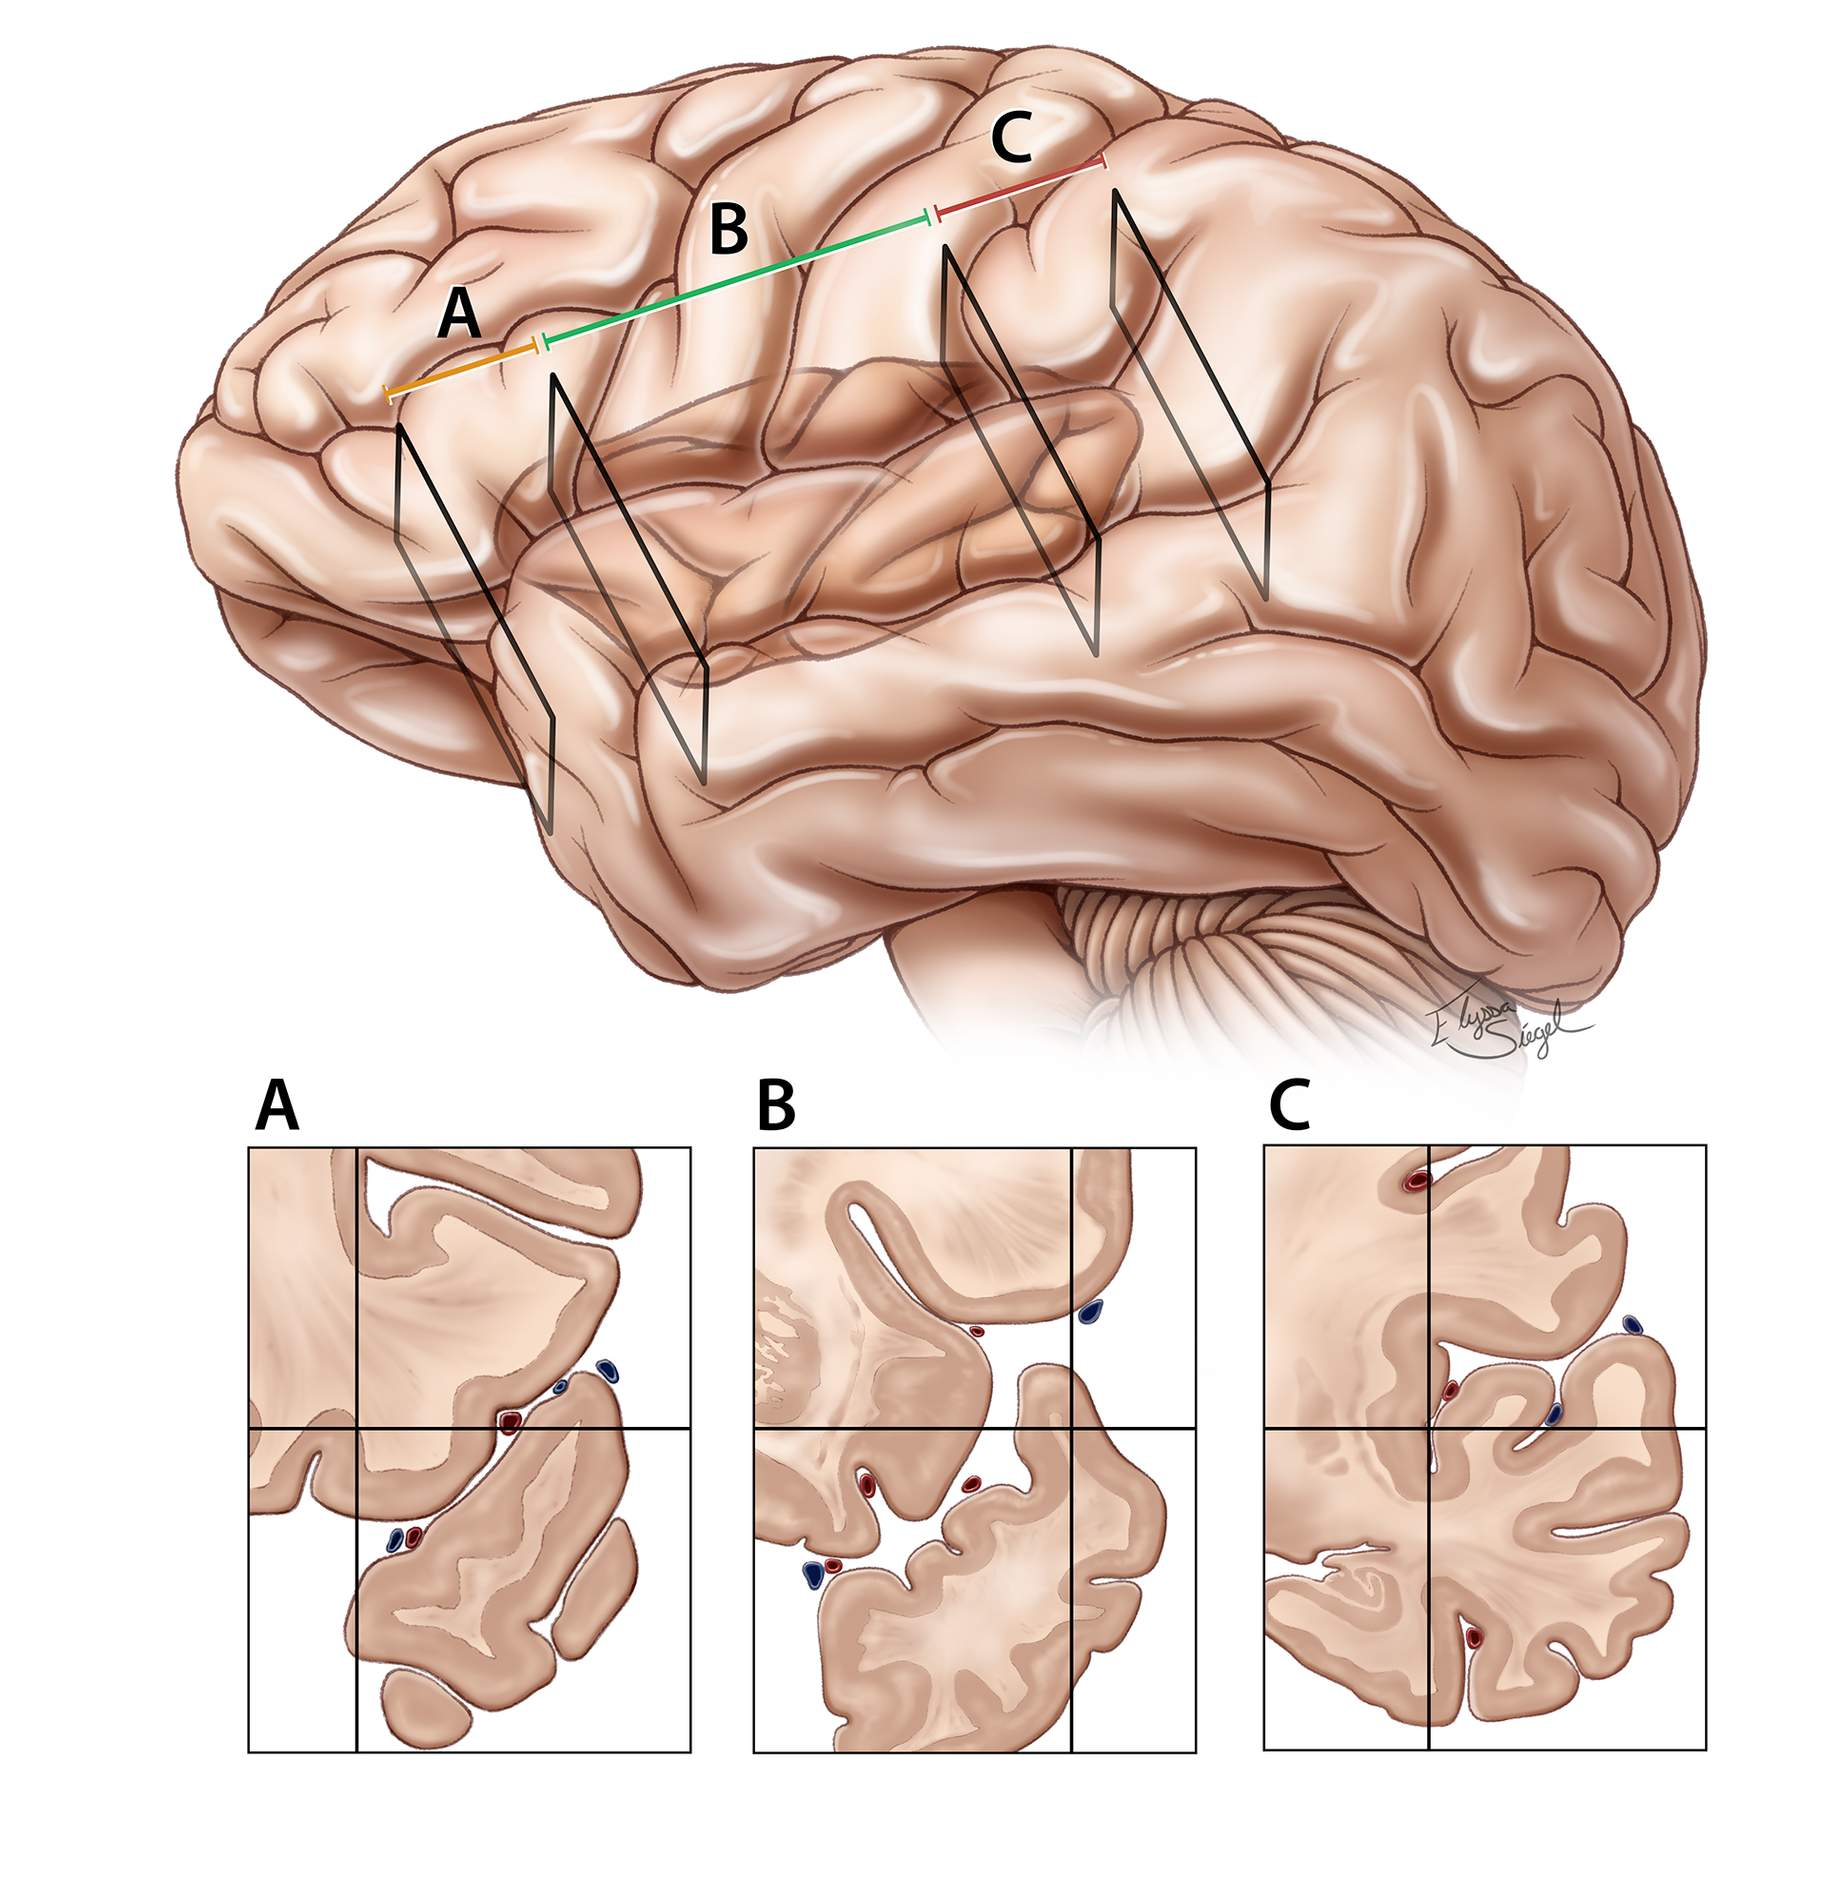 Figure 4: The proximal section of the fissure (vallecula) houses the internal carotid artery bifurcation and limen insula, where the MCA bifurcates into its superior and inferior trunks. The vallecula also contains lateral lenticulostriate perforators and the deep Sylvian vein. Opening of the vallecula will provide space to reach the proximal MCA and internal carotid artery bifurcation territories.  The  proximal (sphenoidal)  section (A) also includes the area (3-4 cm) over the planum polare where the pial surfaces can be highly adherent, requiring gentle microdissection. The paucity of the vessels in this section allows adherence of the frontotemporal opercula.  The  middle (insular) section  (B) is 6 to 7 cm in length and extends from the limen insula to the posterior insular point. In this section of the fissure, the sulci are less interdigitated, possibly simplifying fissure dissection.  The  posterior (retroinsular) section (C)  is short (4–5 cm) but deep, and covered by the supramarginal, transverse temporal, and transverse parietal gyri. The dissection can be especially challenging at this segment because of complex interdigitations of the opercula.